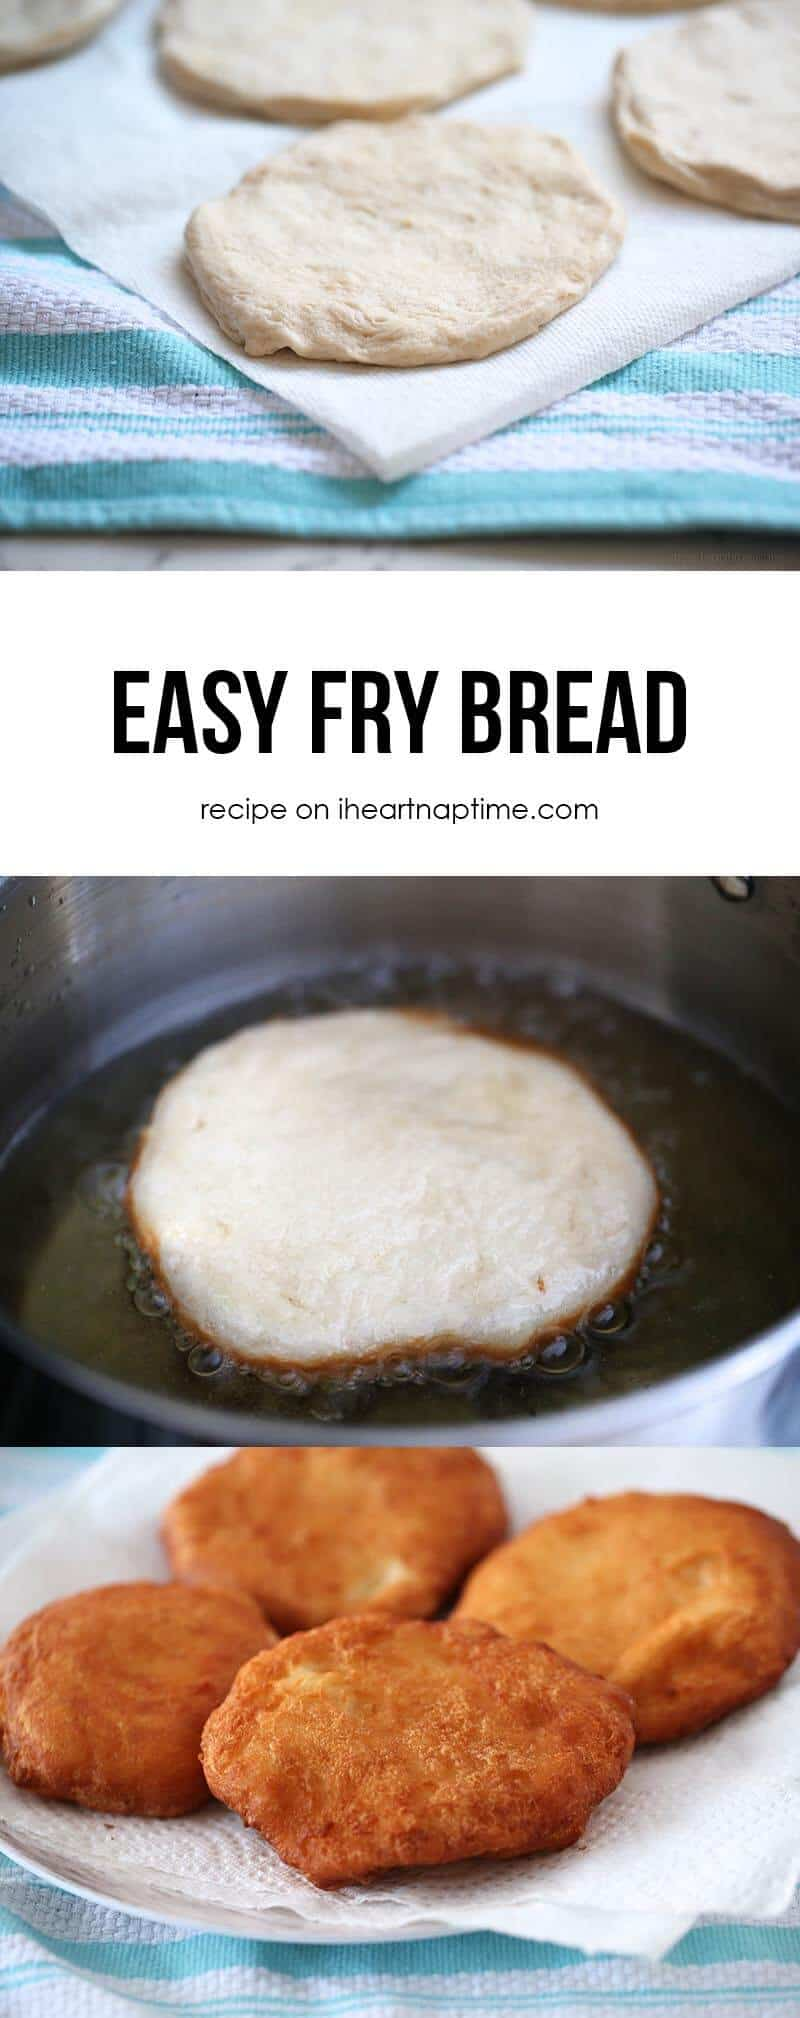 Easy fry bread